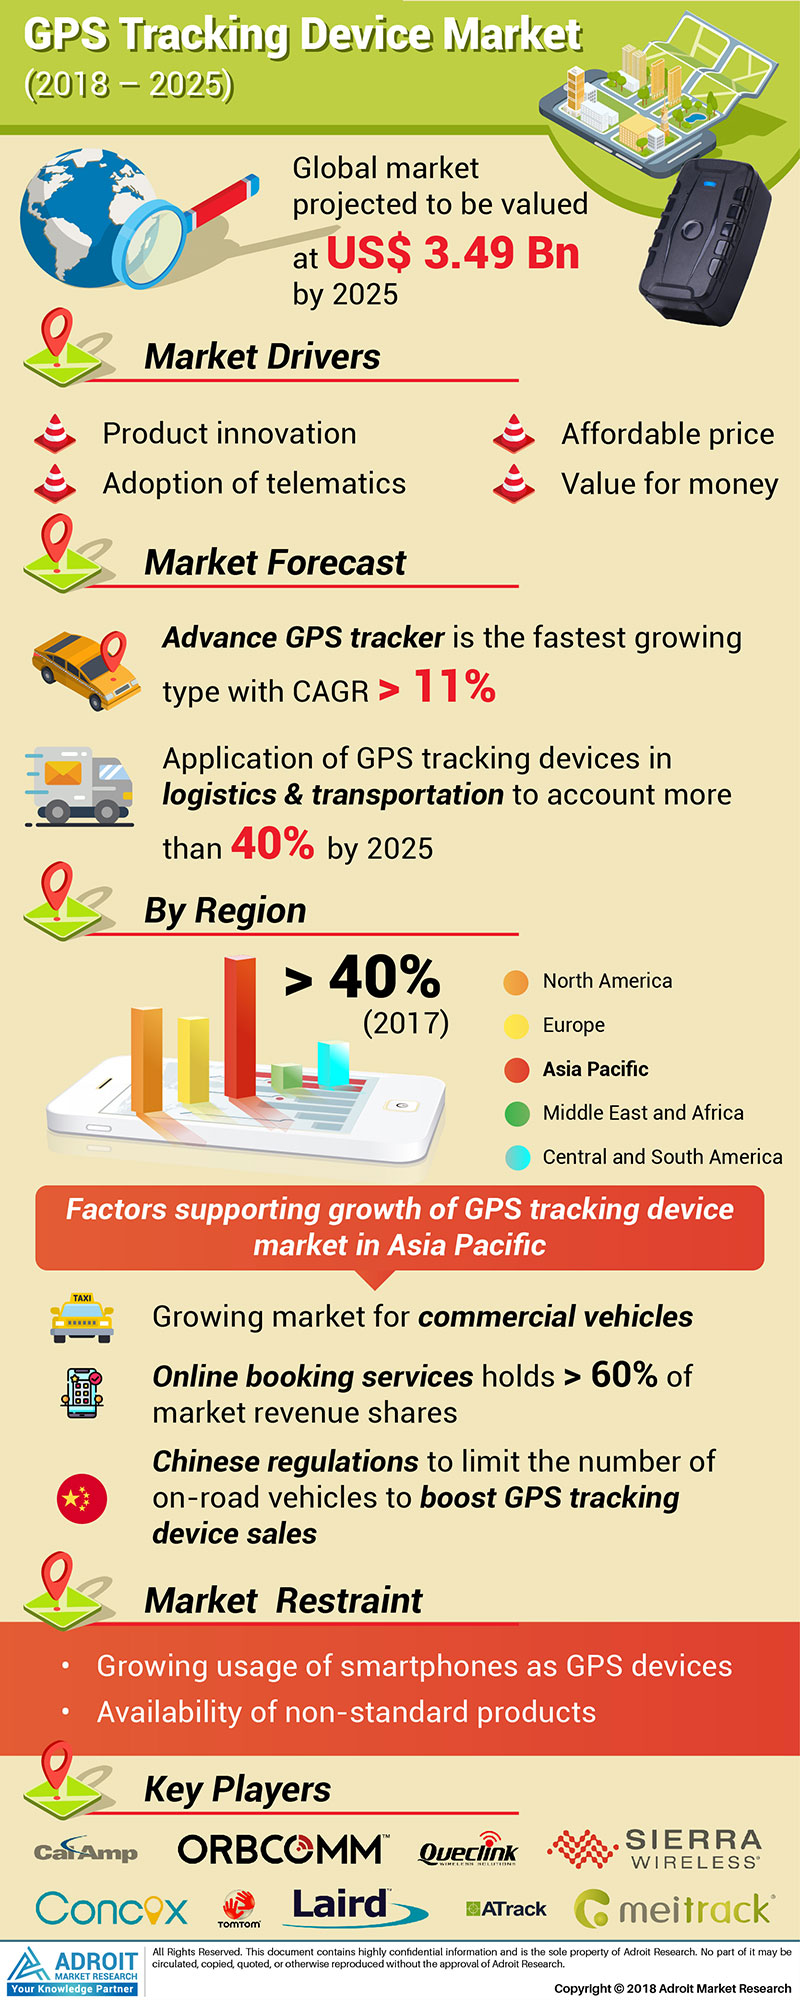 Global GPS Tracking Device Market Size 2017 by Type, Application, Region And Forecast 2018 to 2025